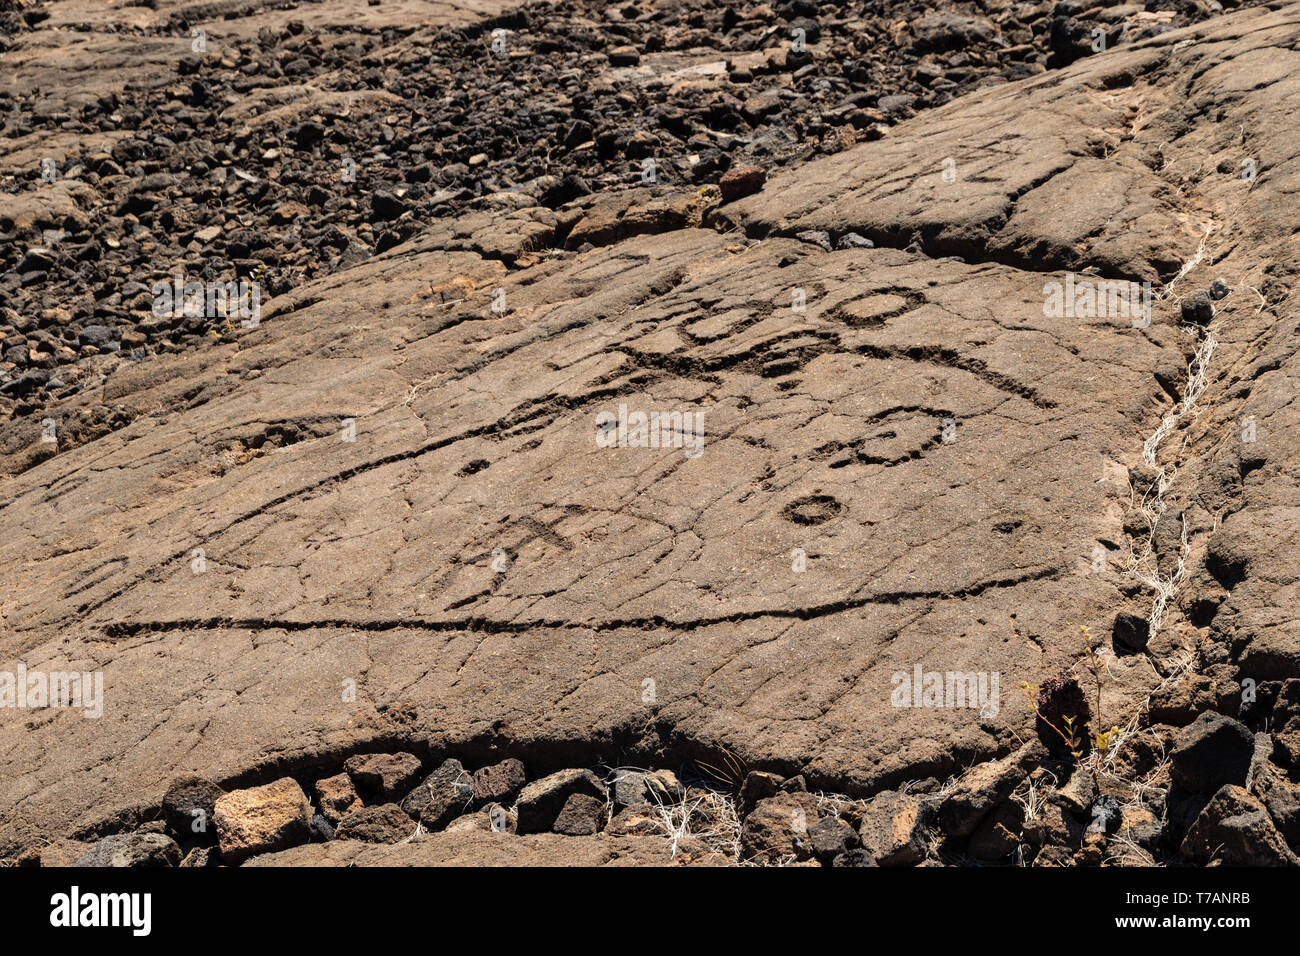 Petroglyphs in Waikoloa Field, on the King's Trail ('Mamalahoa'), near Kona on the Big Island of Hawaii. Carved into volcanic rock, the earliest of th - Stock Image